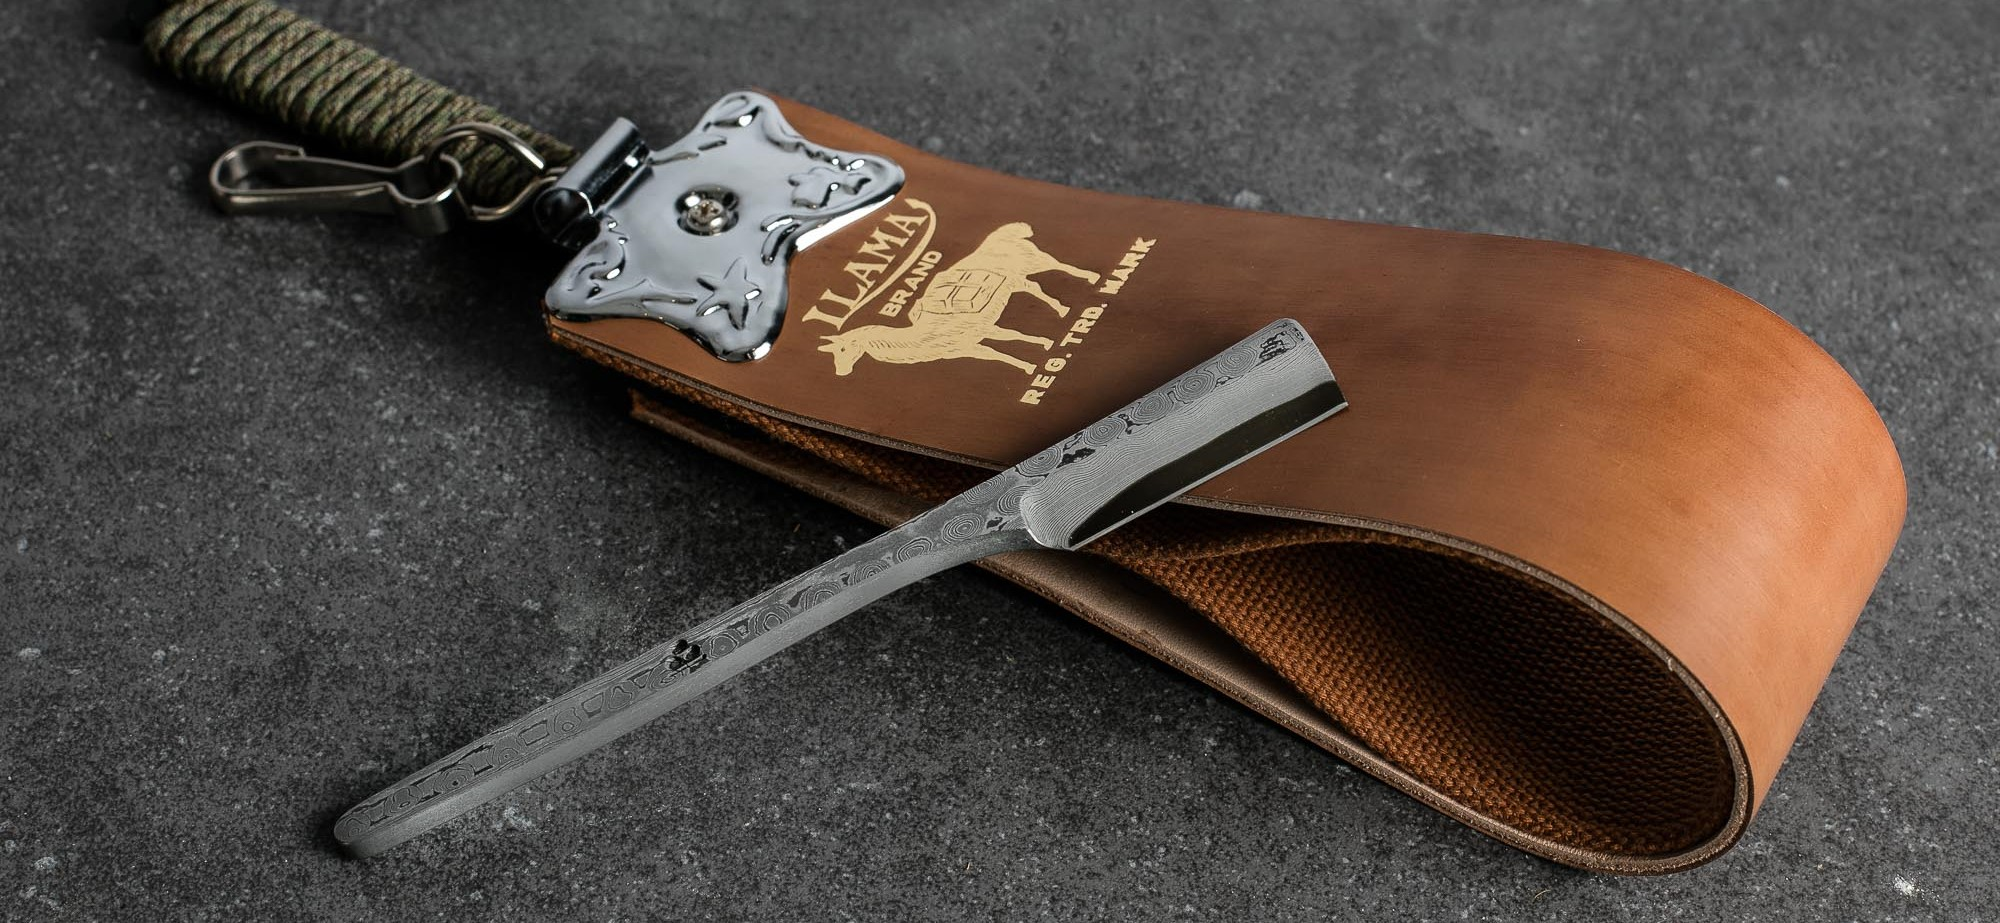 Choosing the Right Leather Strop for Your Straight Razor